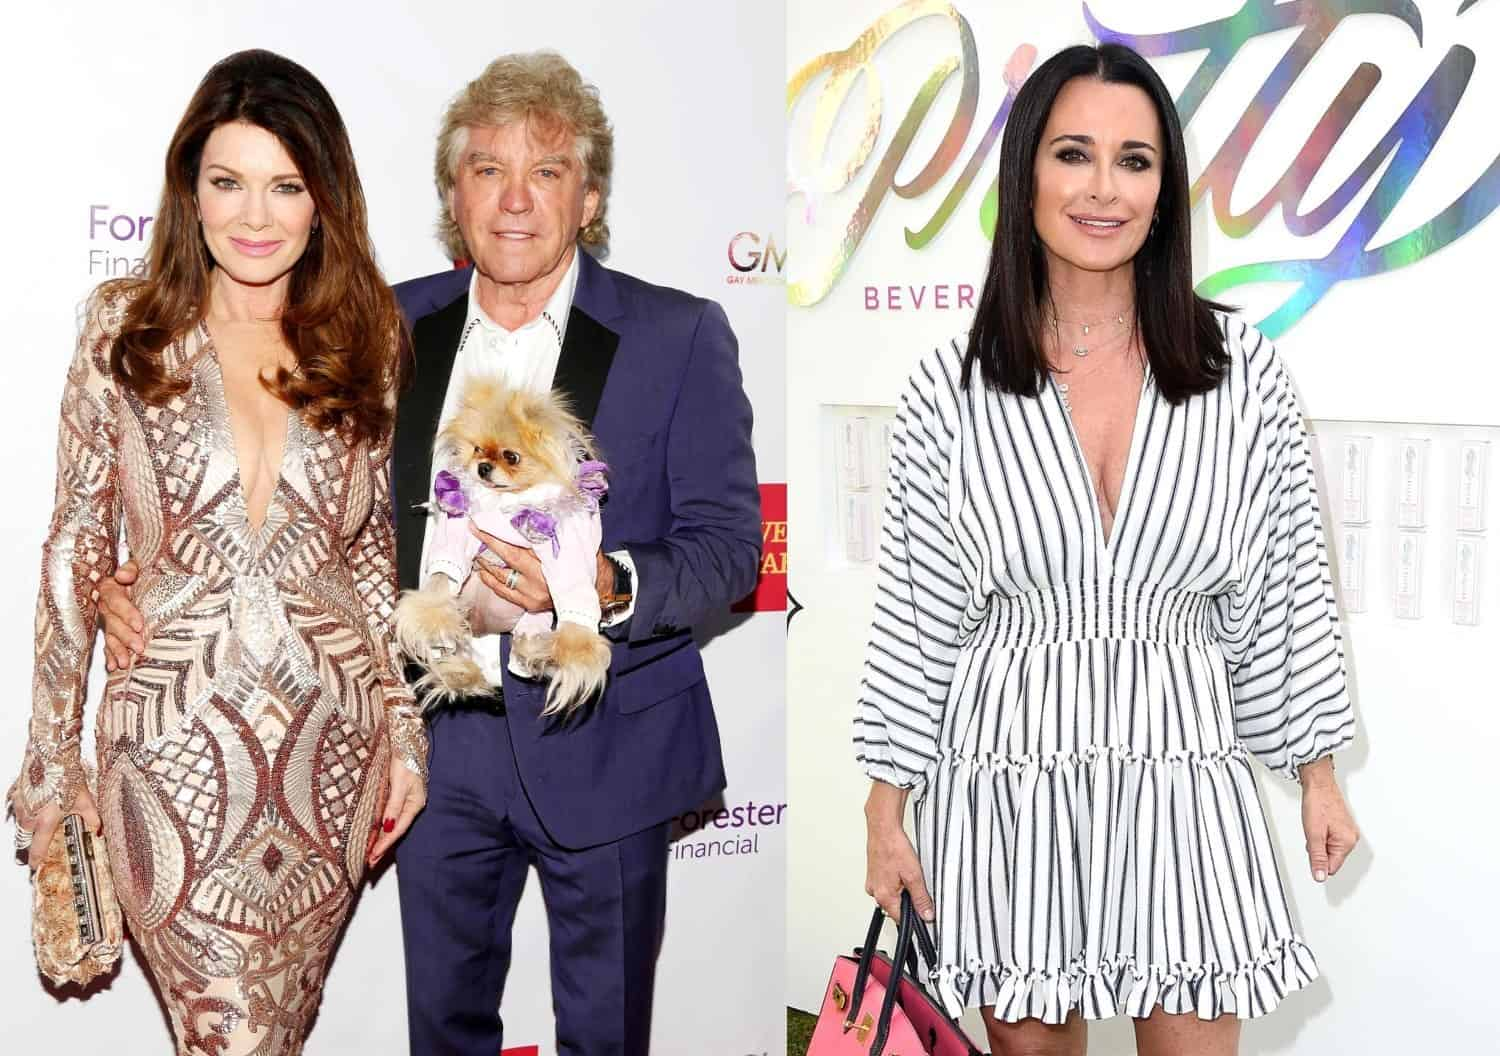 RHOBH Lisa Vanderpump and Ken Todd feud with Kyle Richards